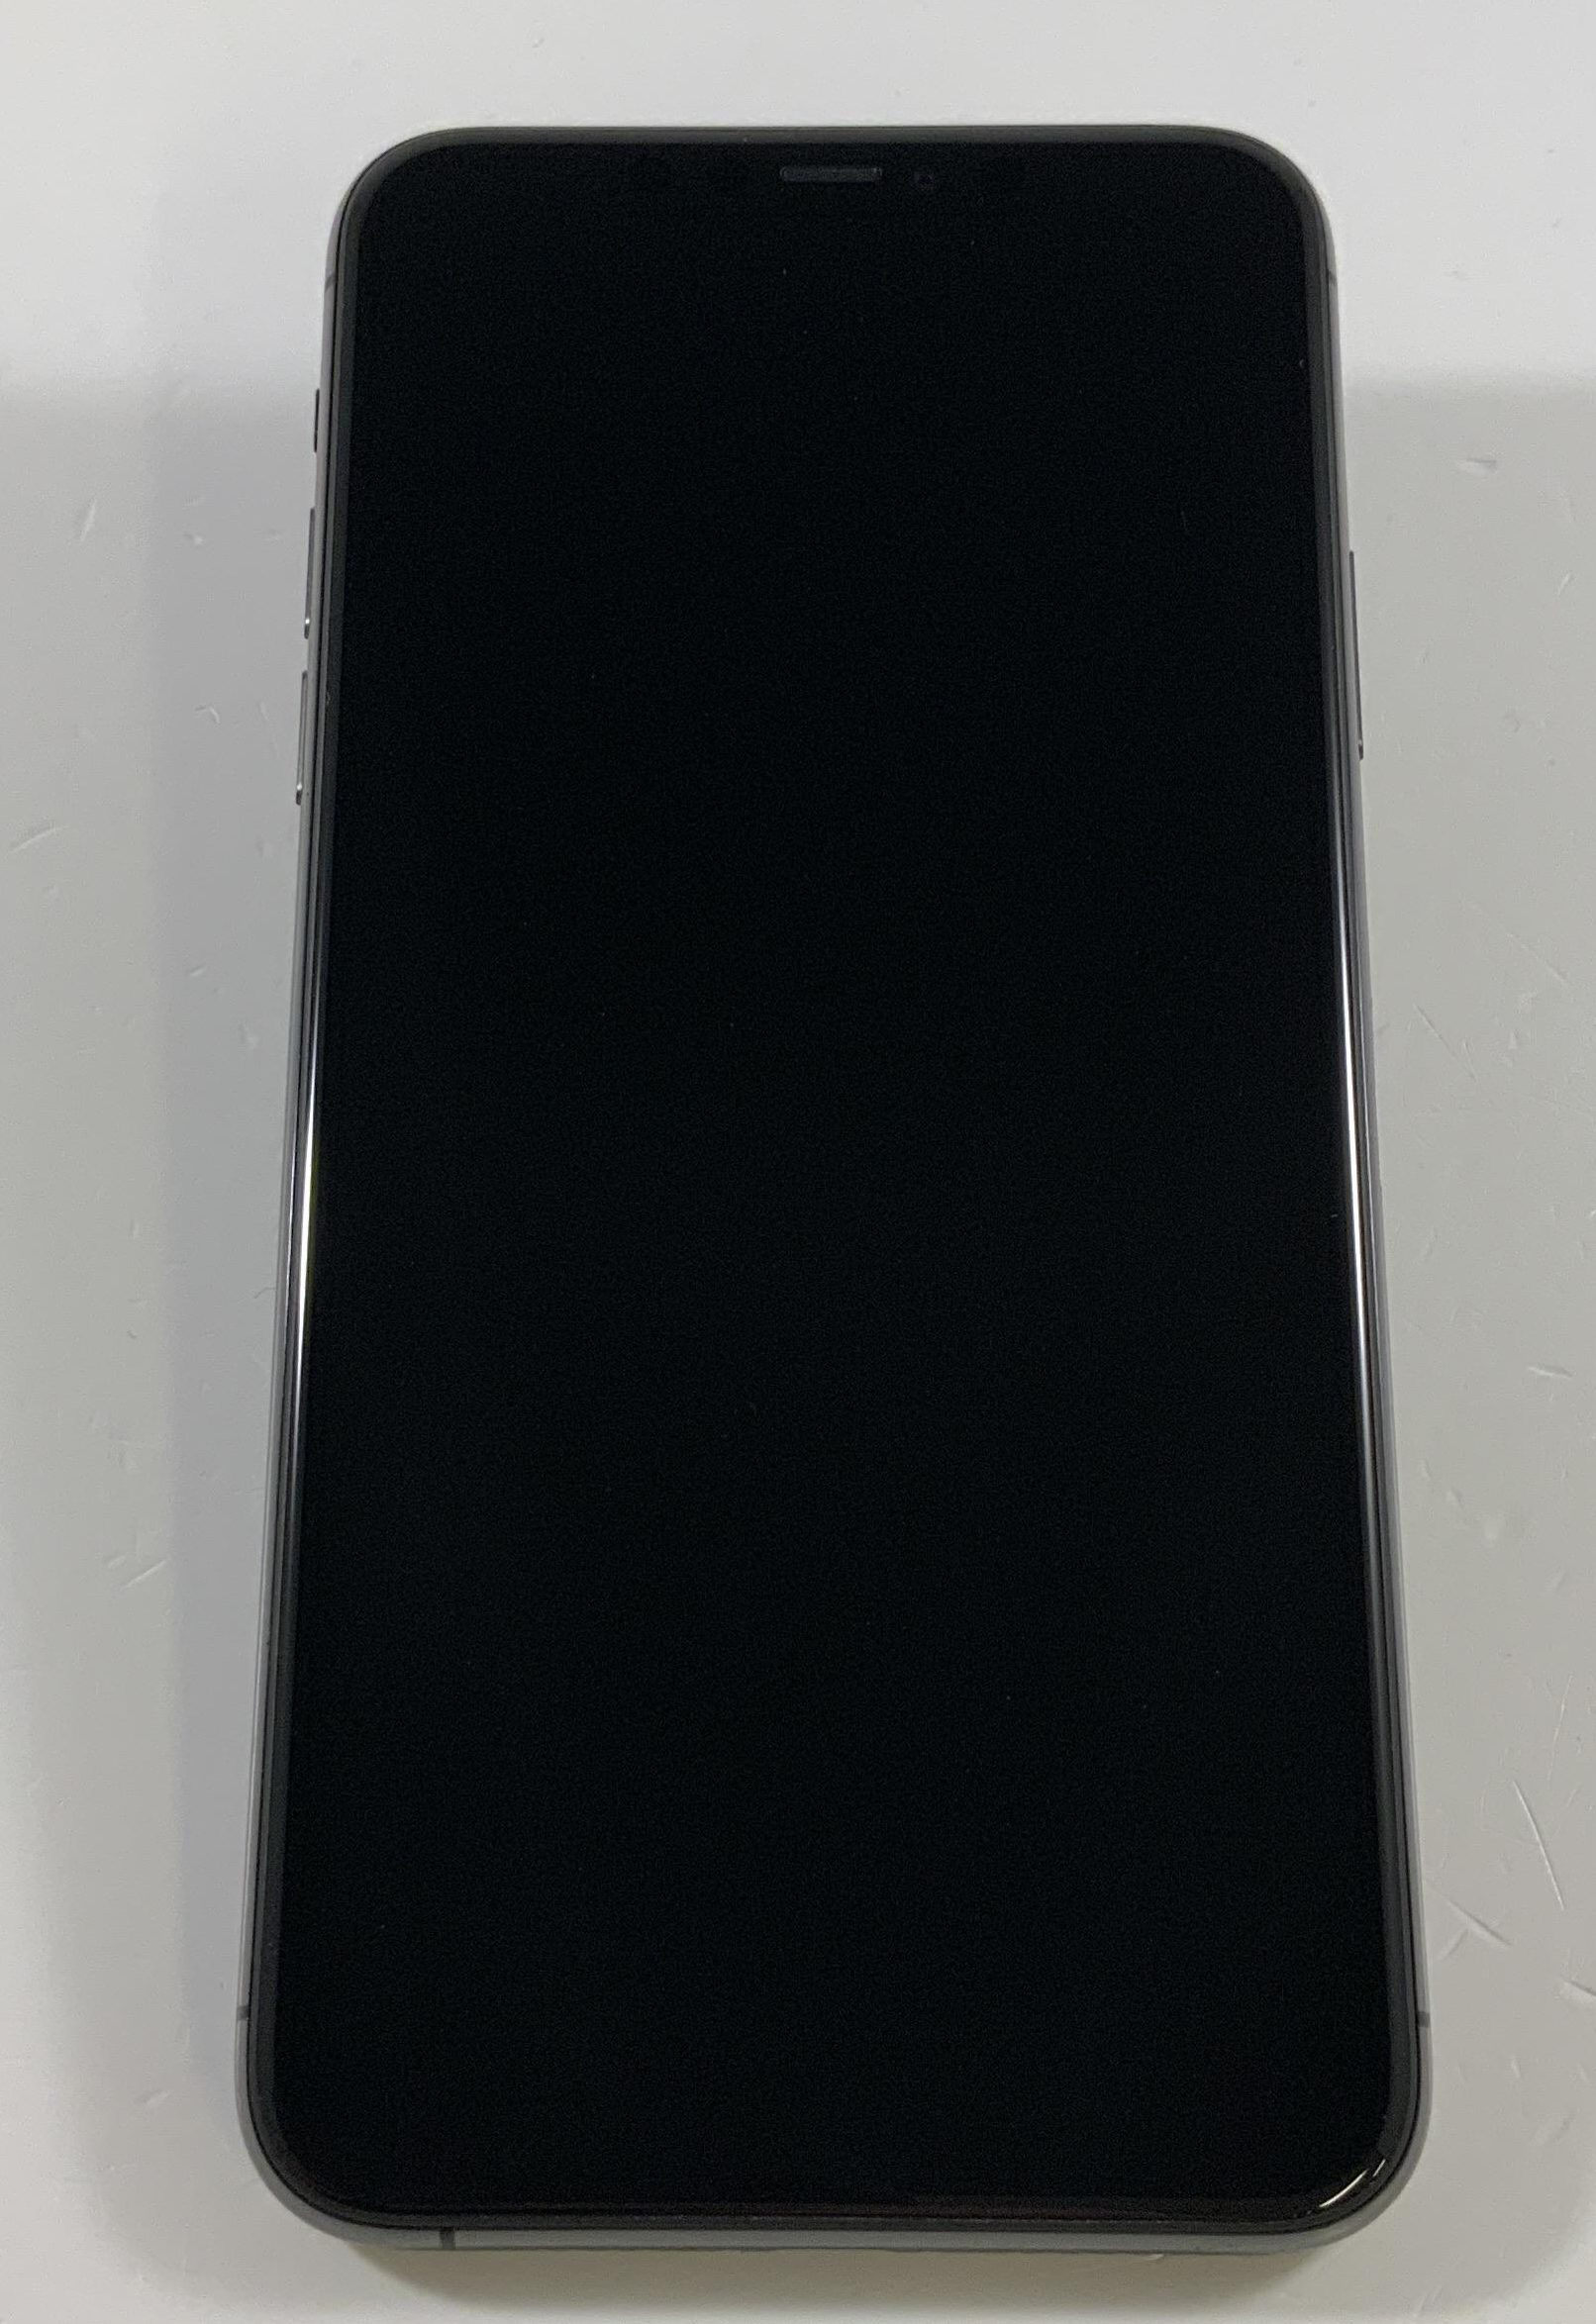 iPhone 11 Pro Max 64GB, 64GB, Space Gray, obraz 1